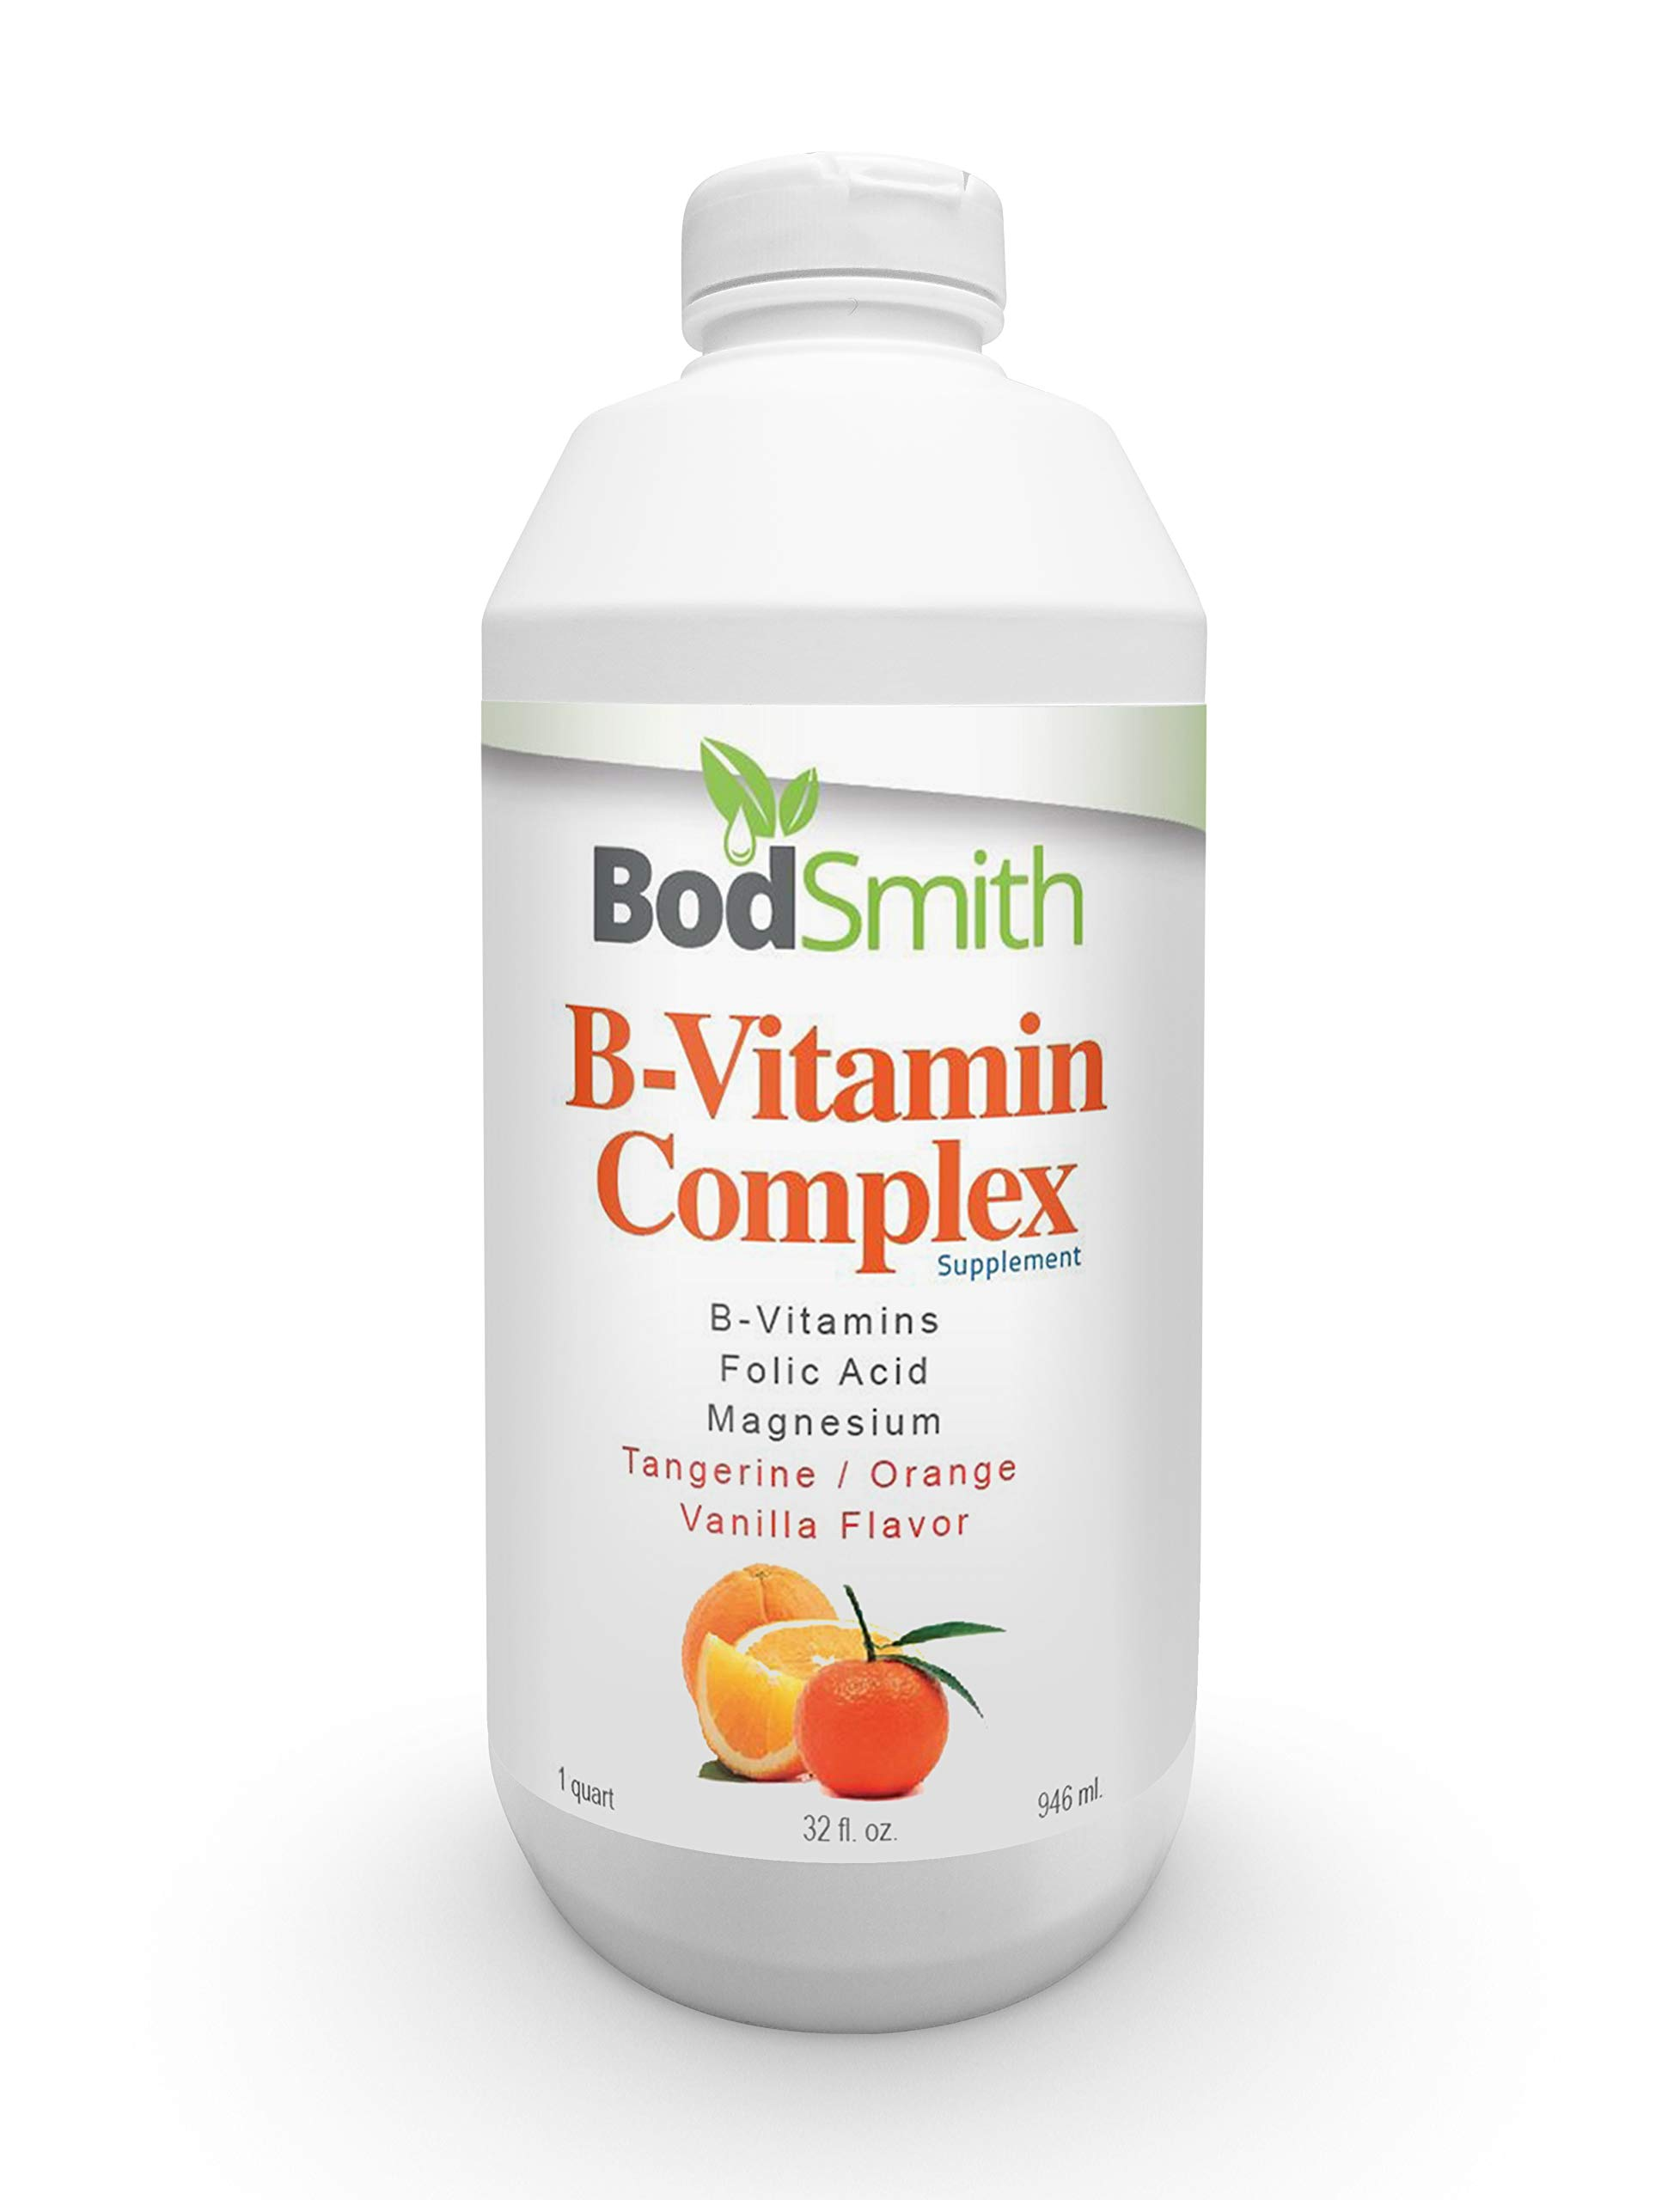 Liquid B-Vitamin Complex by BodSmith This B-Vitamin Complex Vitamin Provides a Natural Energy Boost Without stimulants or Resulting in a Caffeine Crash.